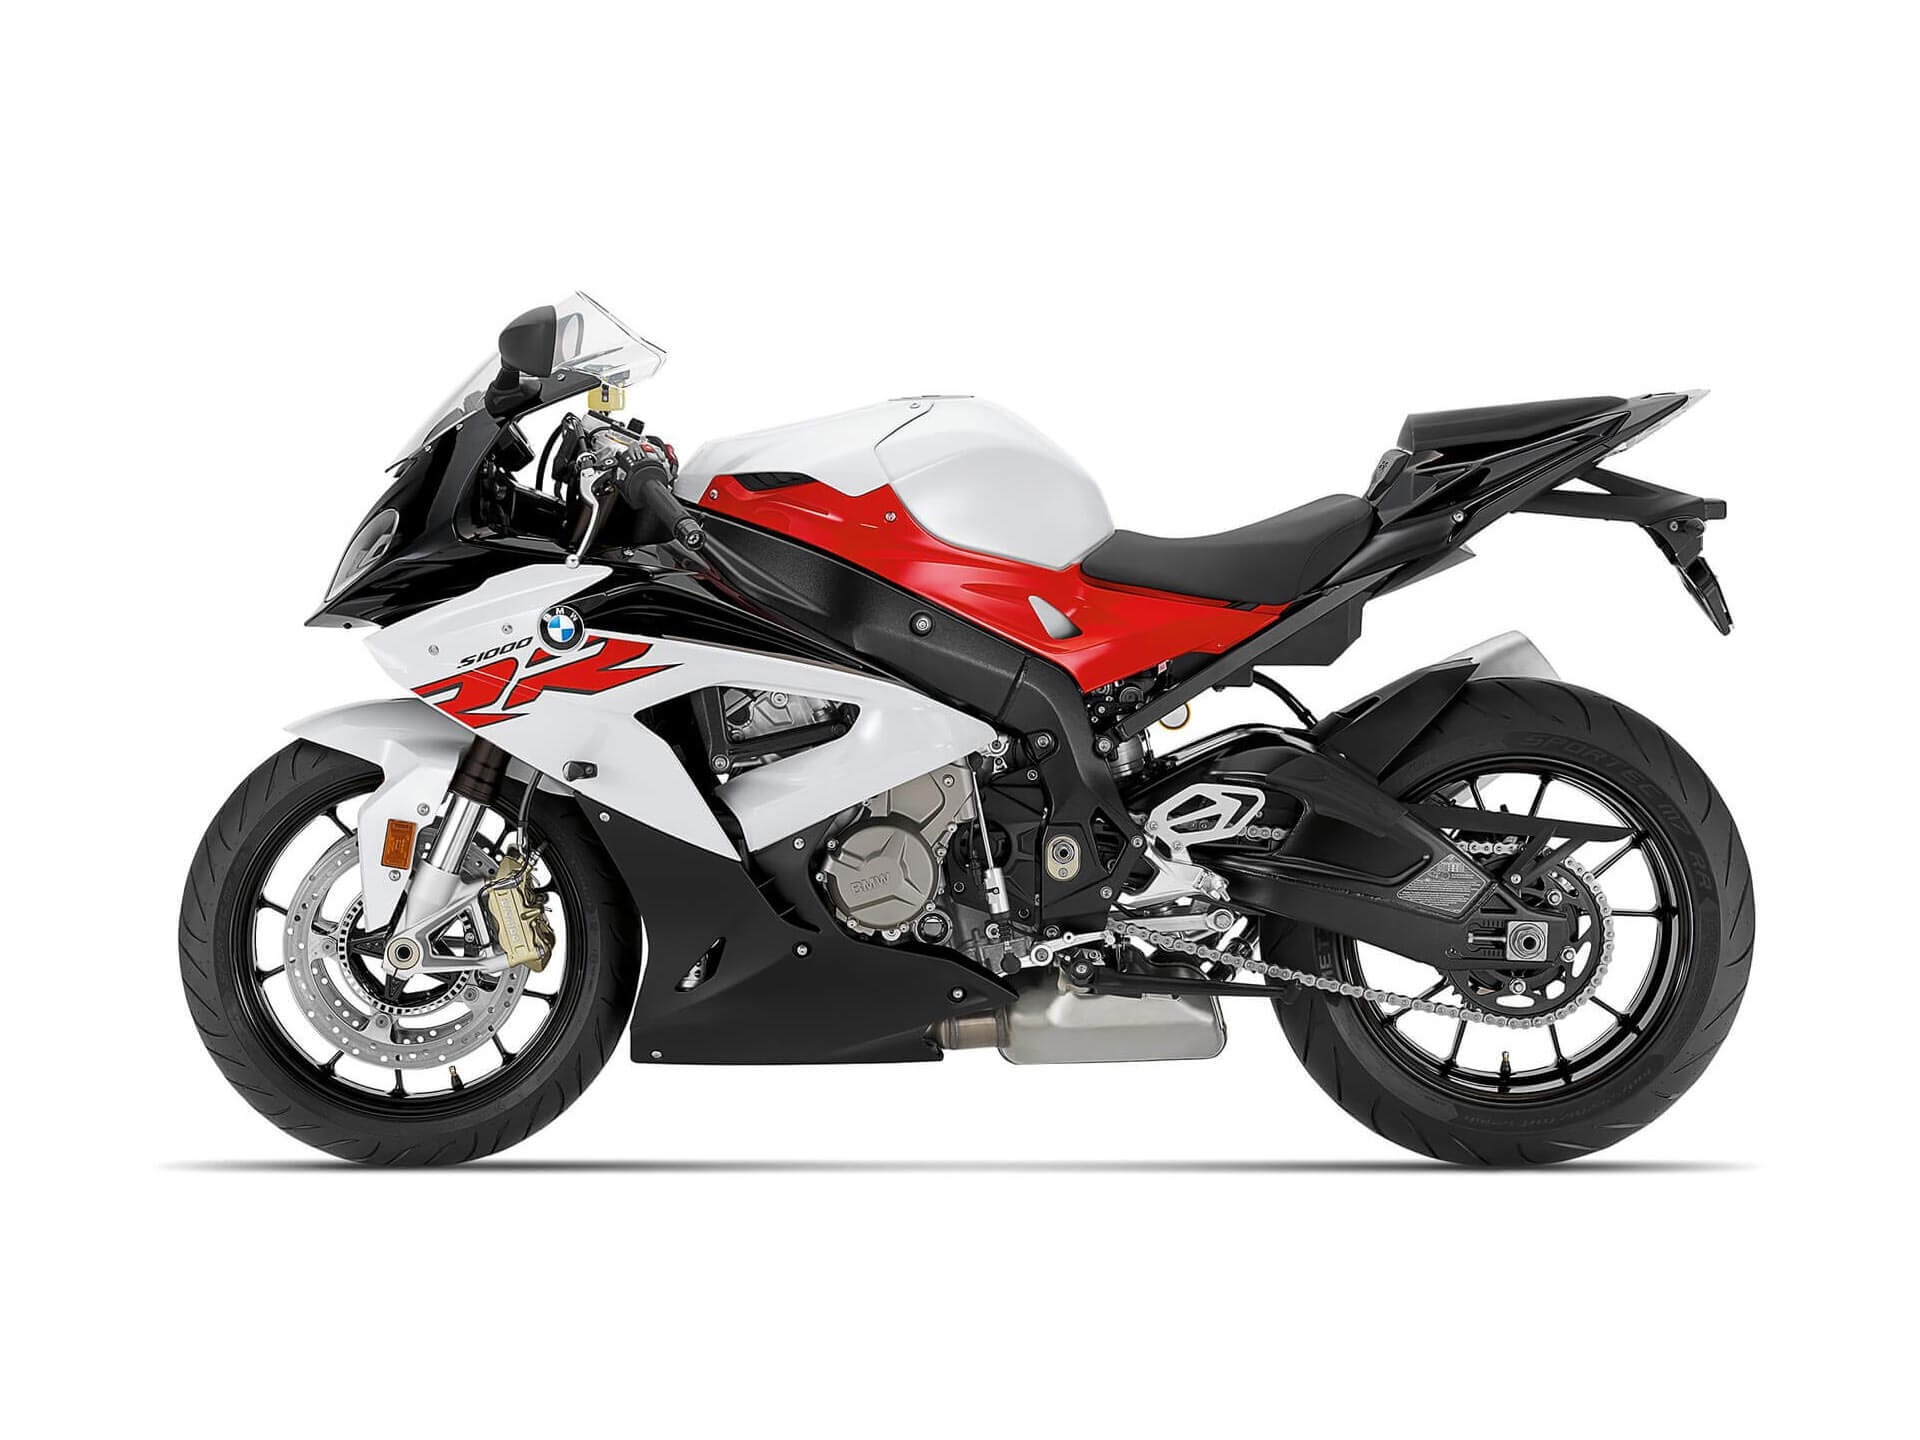 2018 S 1000 Rr Townsville Bmw Motorcycles The Top Line Of Bikes Motorrad